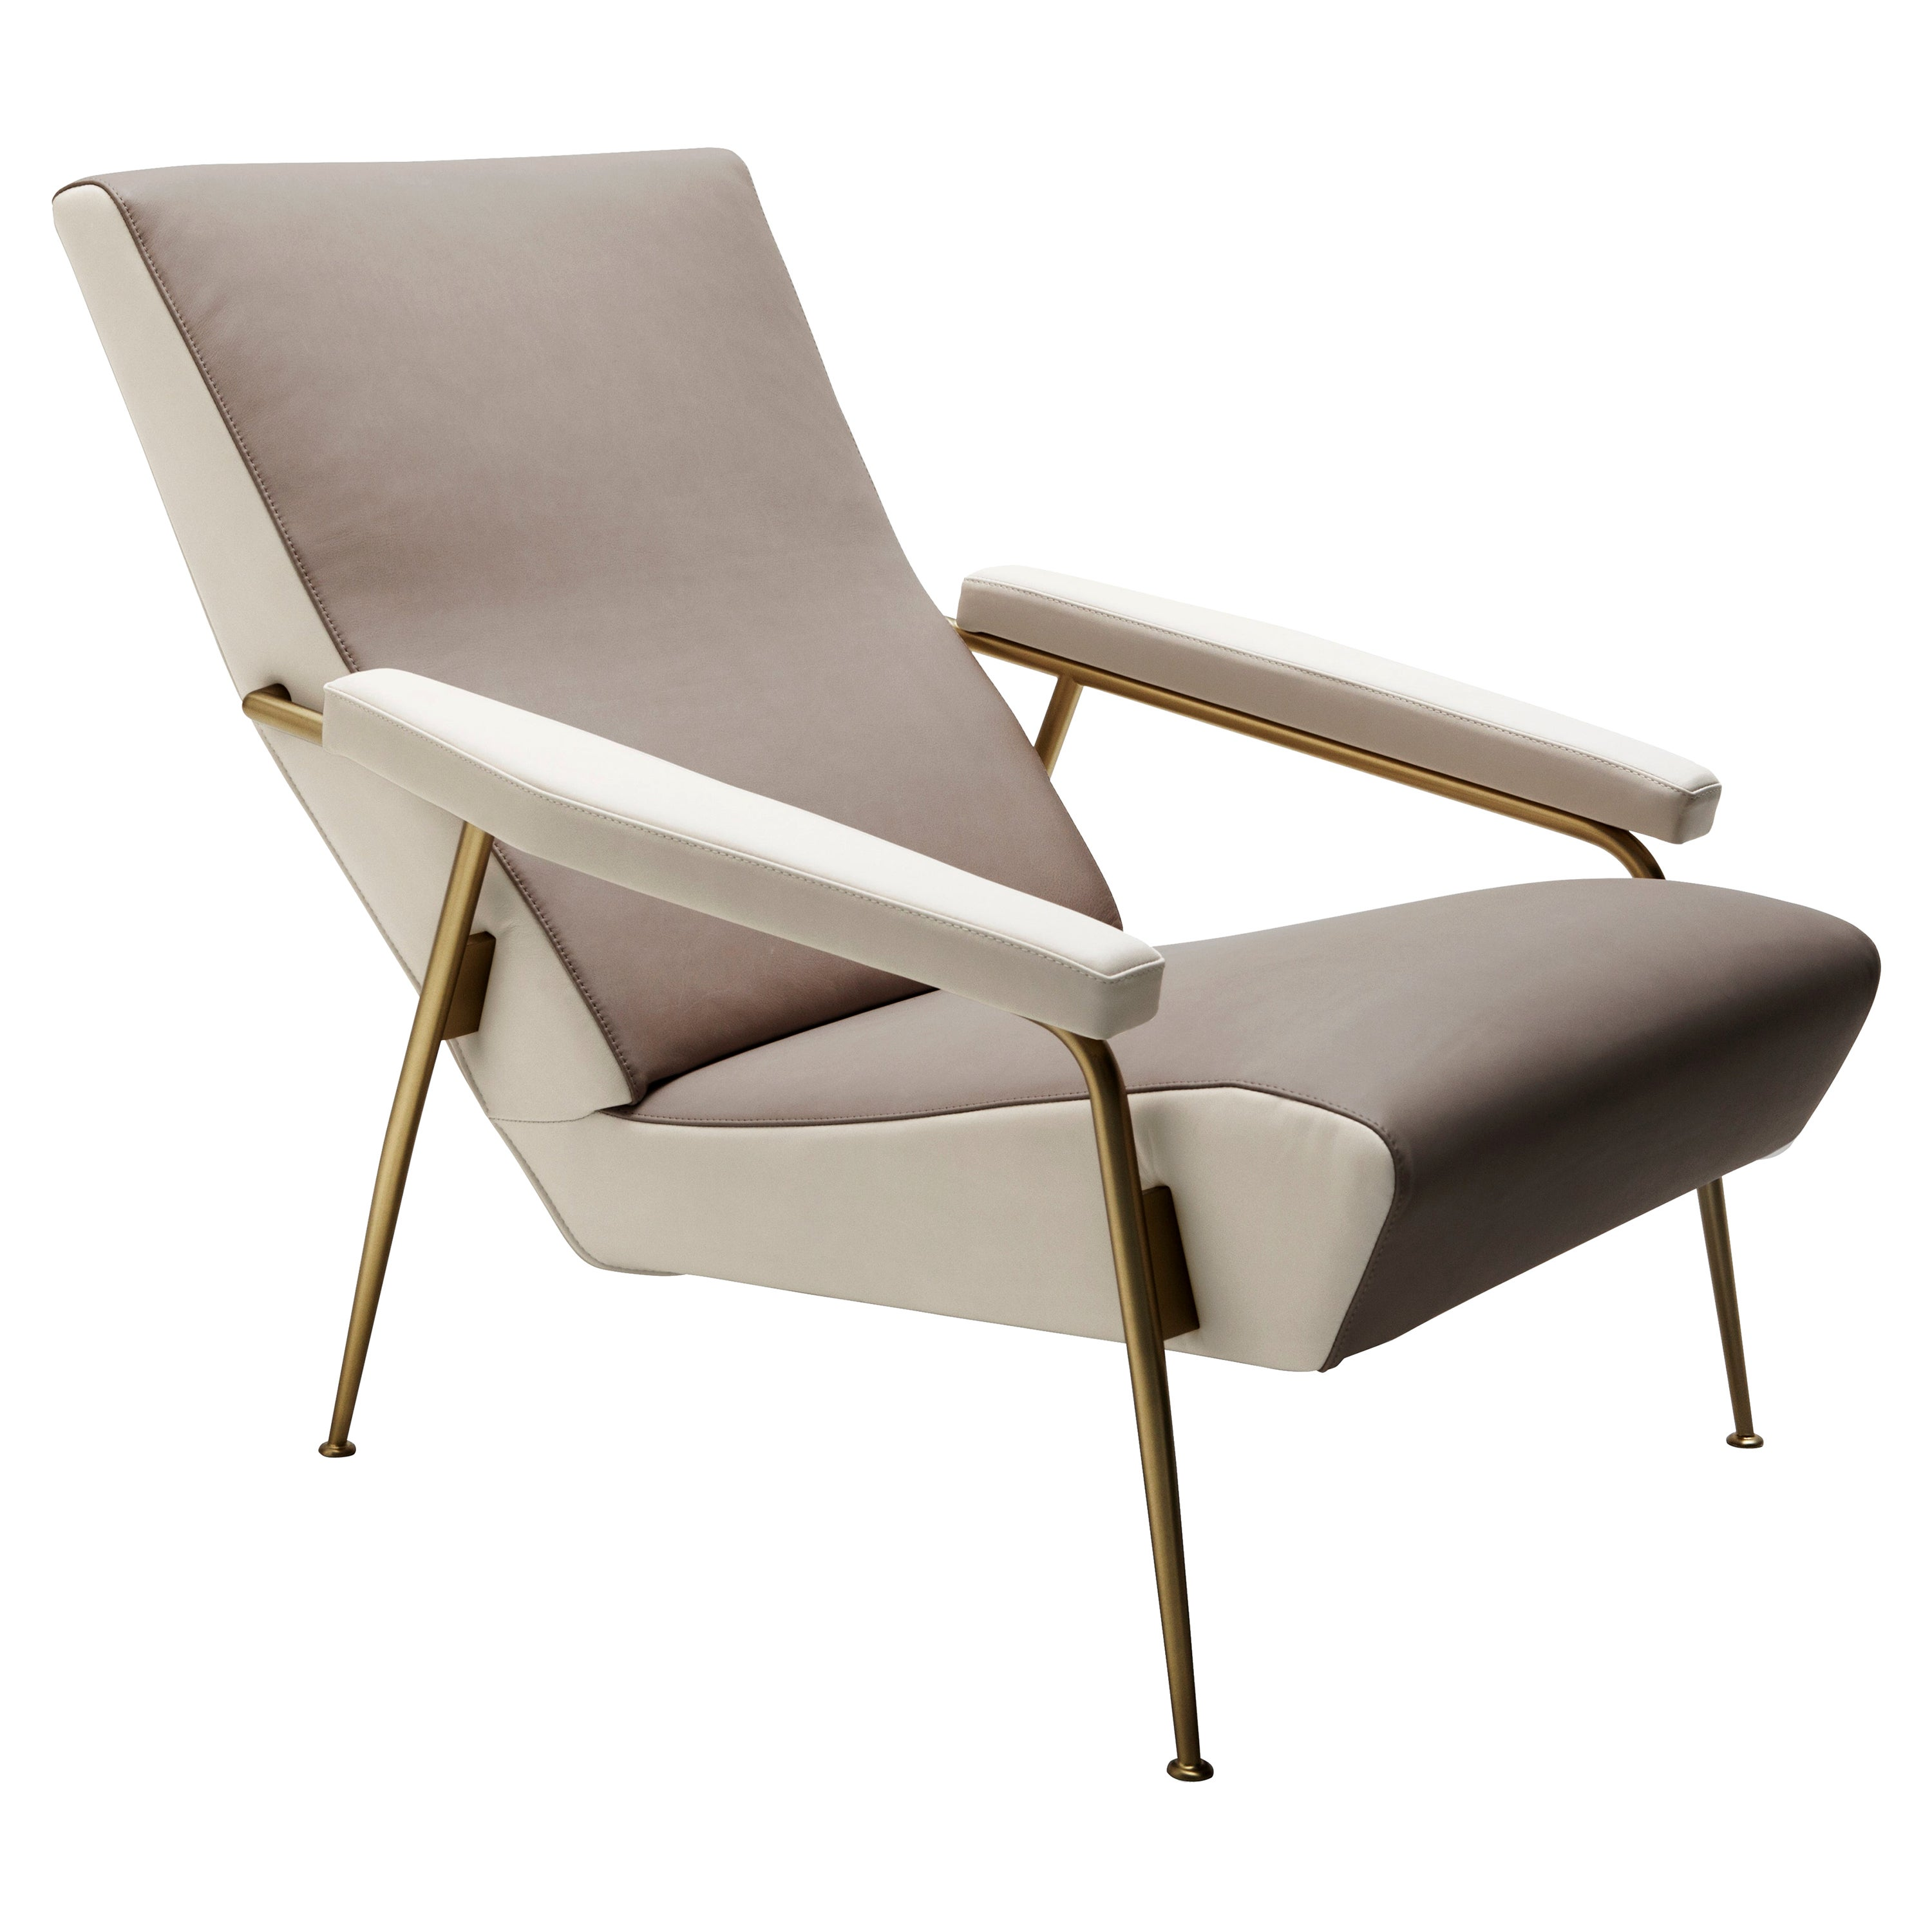 Molteni&C D.153.1 Armchair in Leather by Gio Ponti